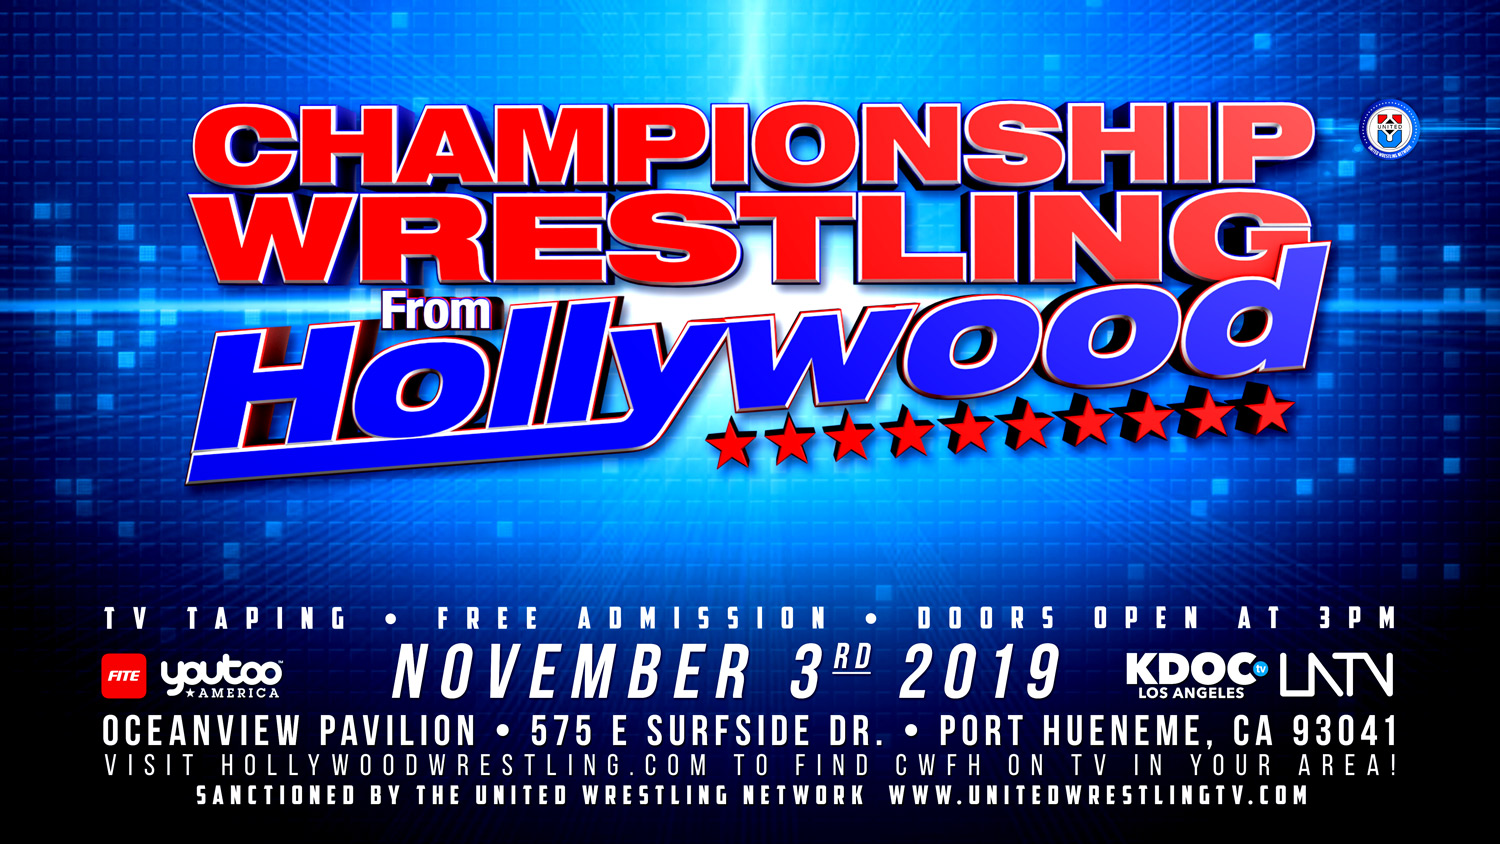 Meet NWA's Eli Drake, PP3 Qualifiers, and More on Nov 3!